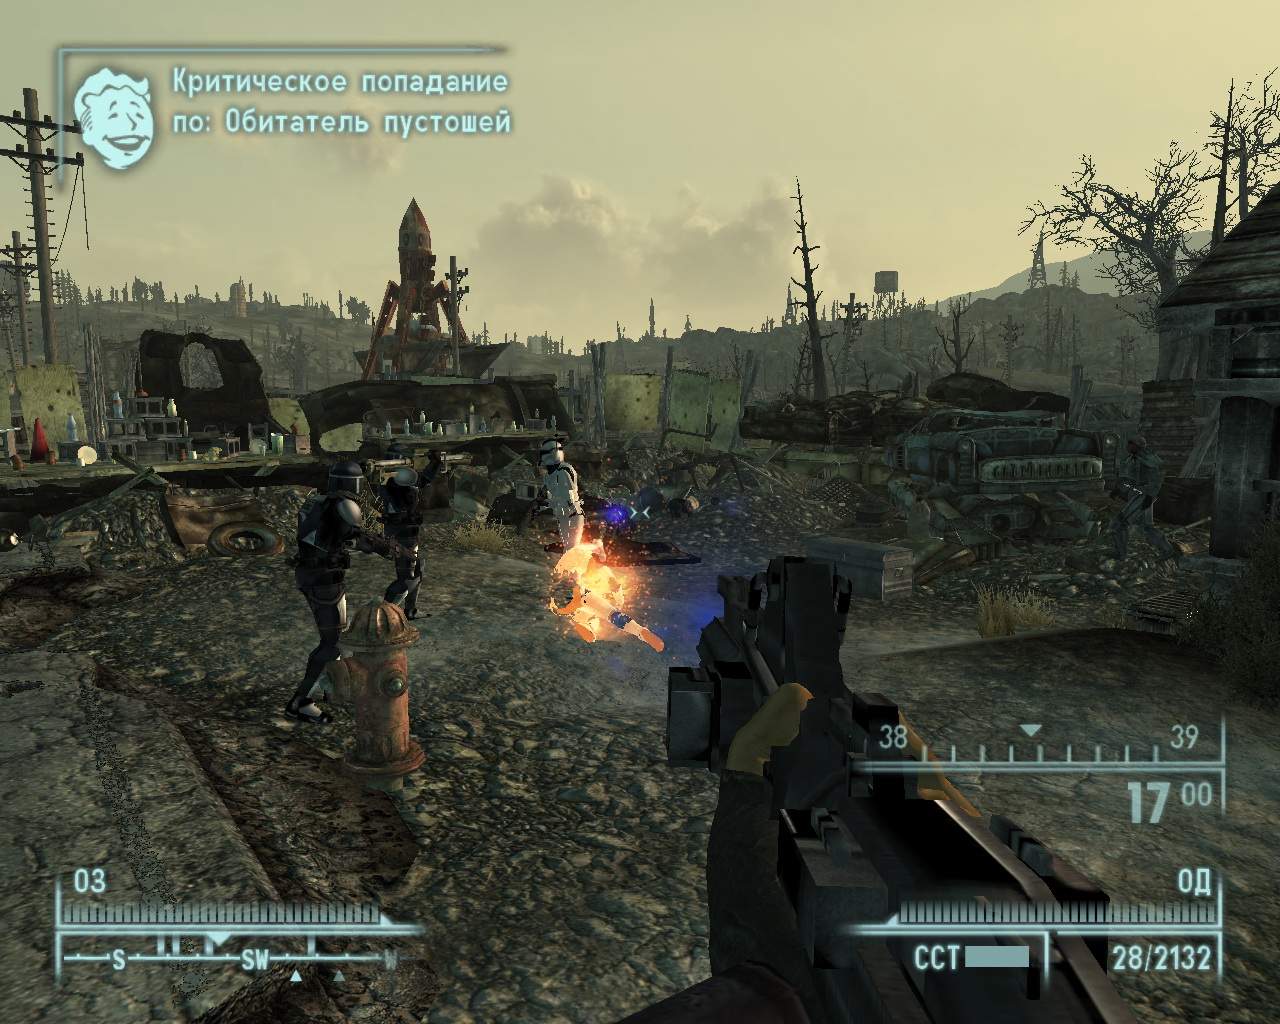 modification effects for all StarWars weapons at Fallout3